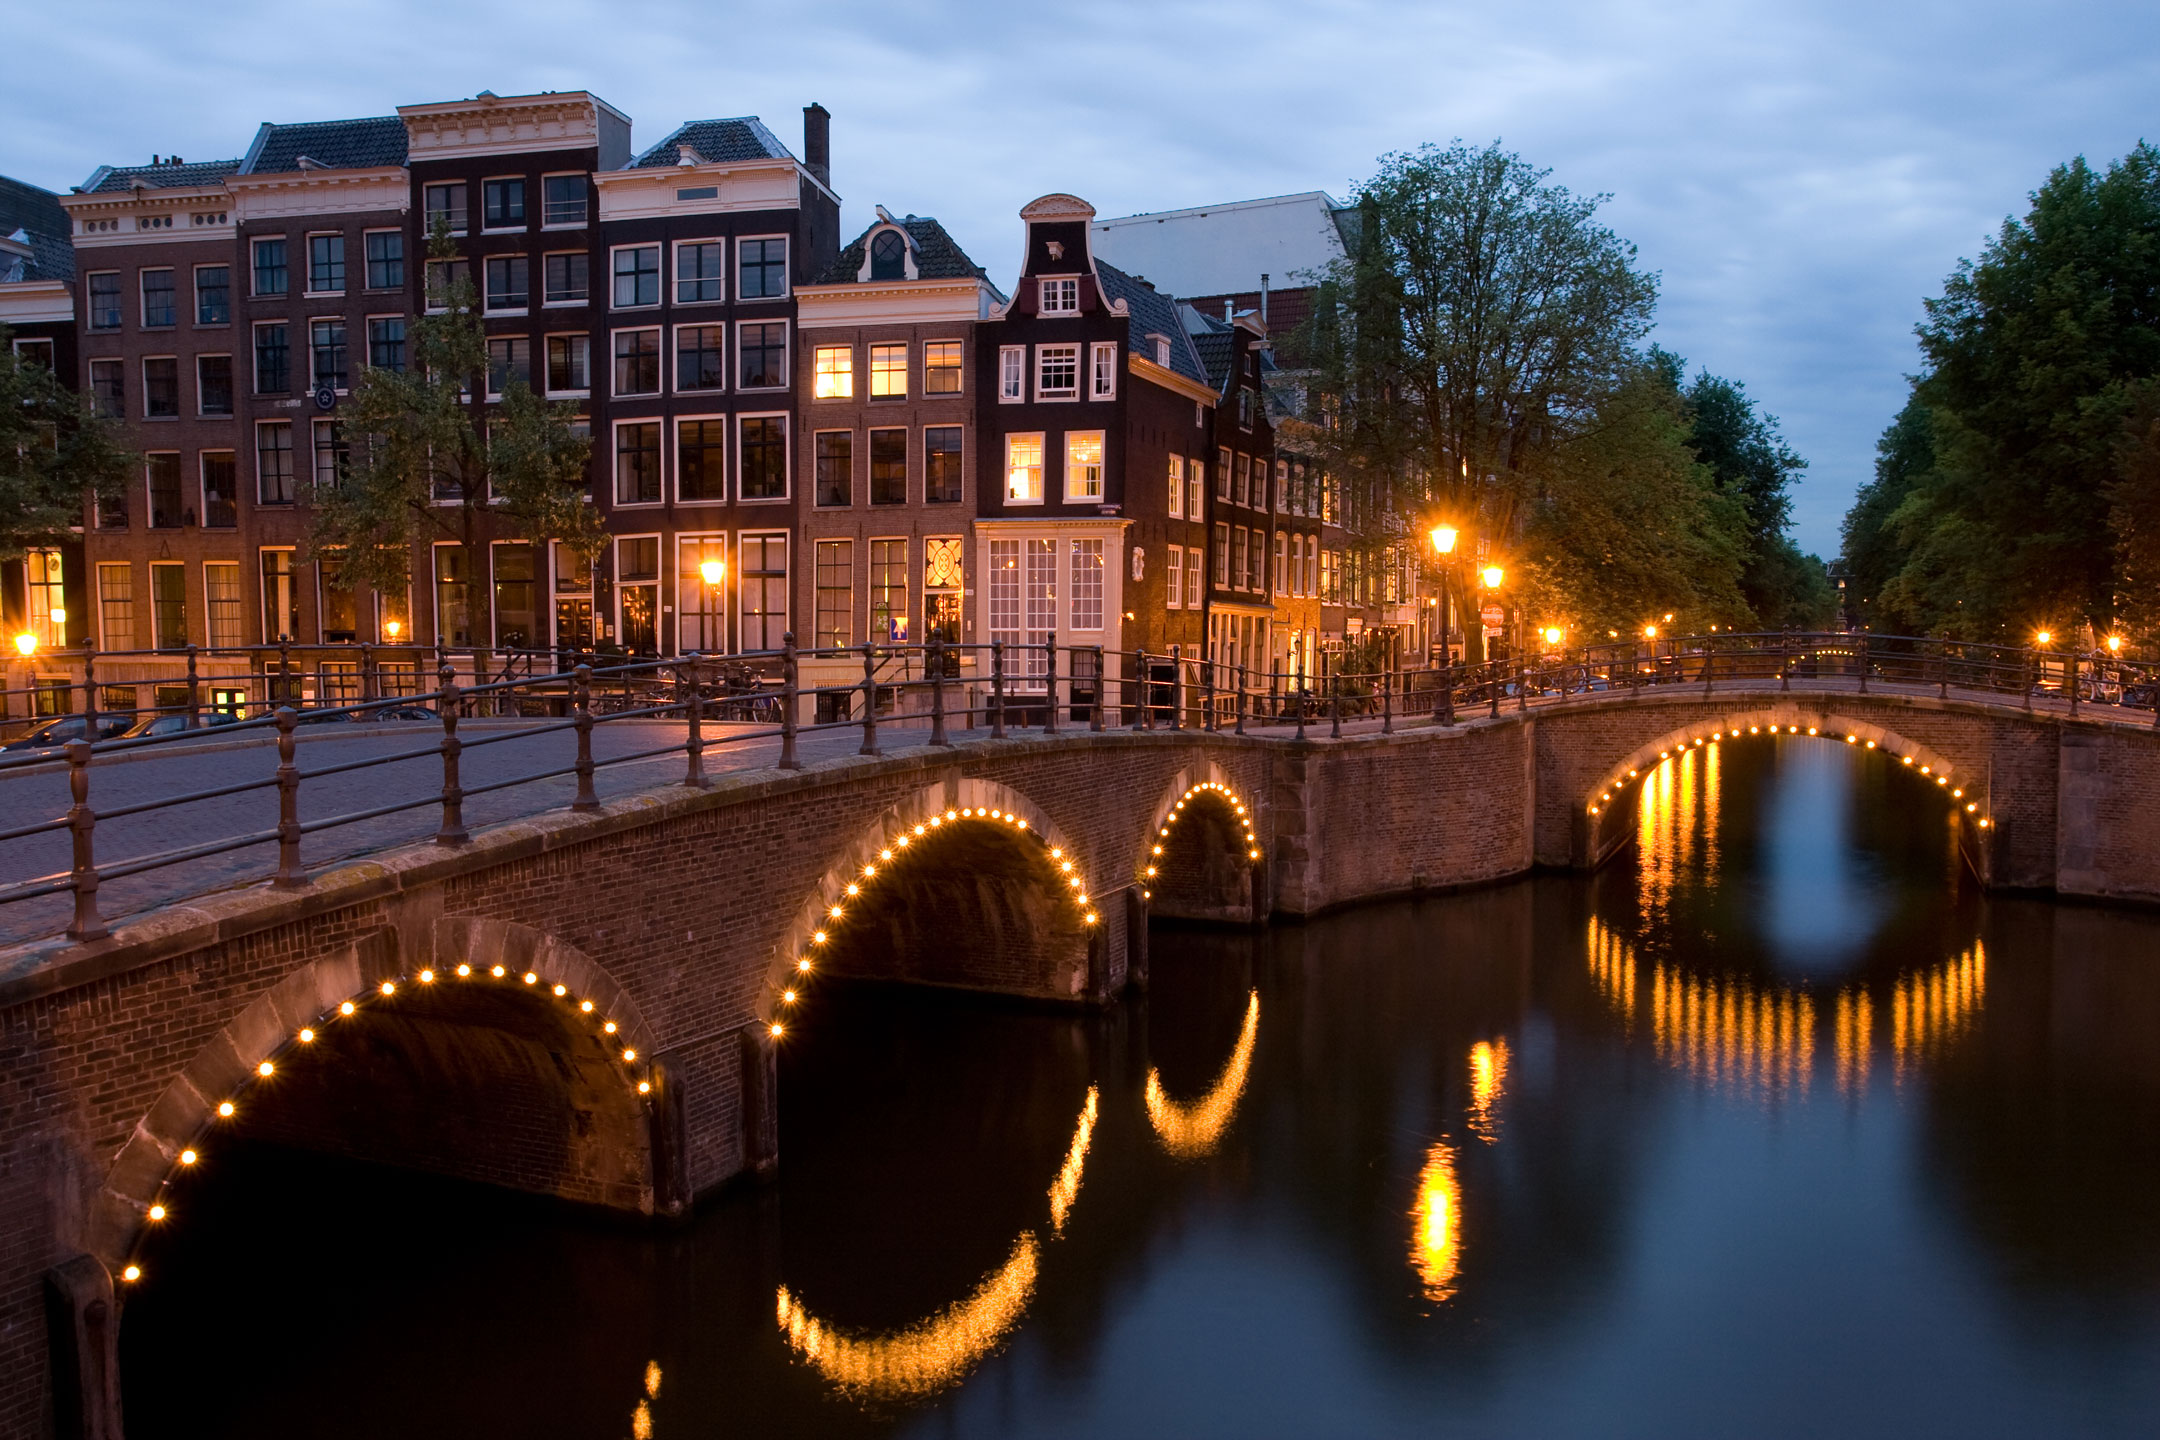 43rd Annual meeting of the European Teratology Society in Amsterdam, the Netherlands